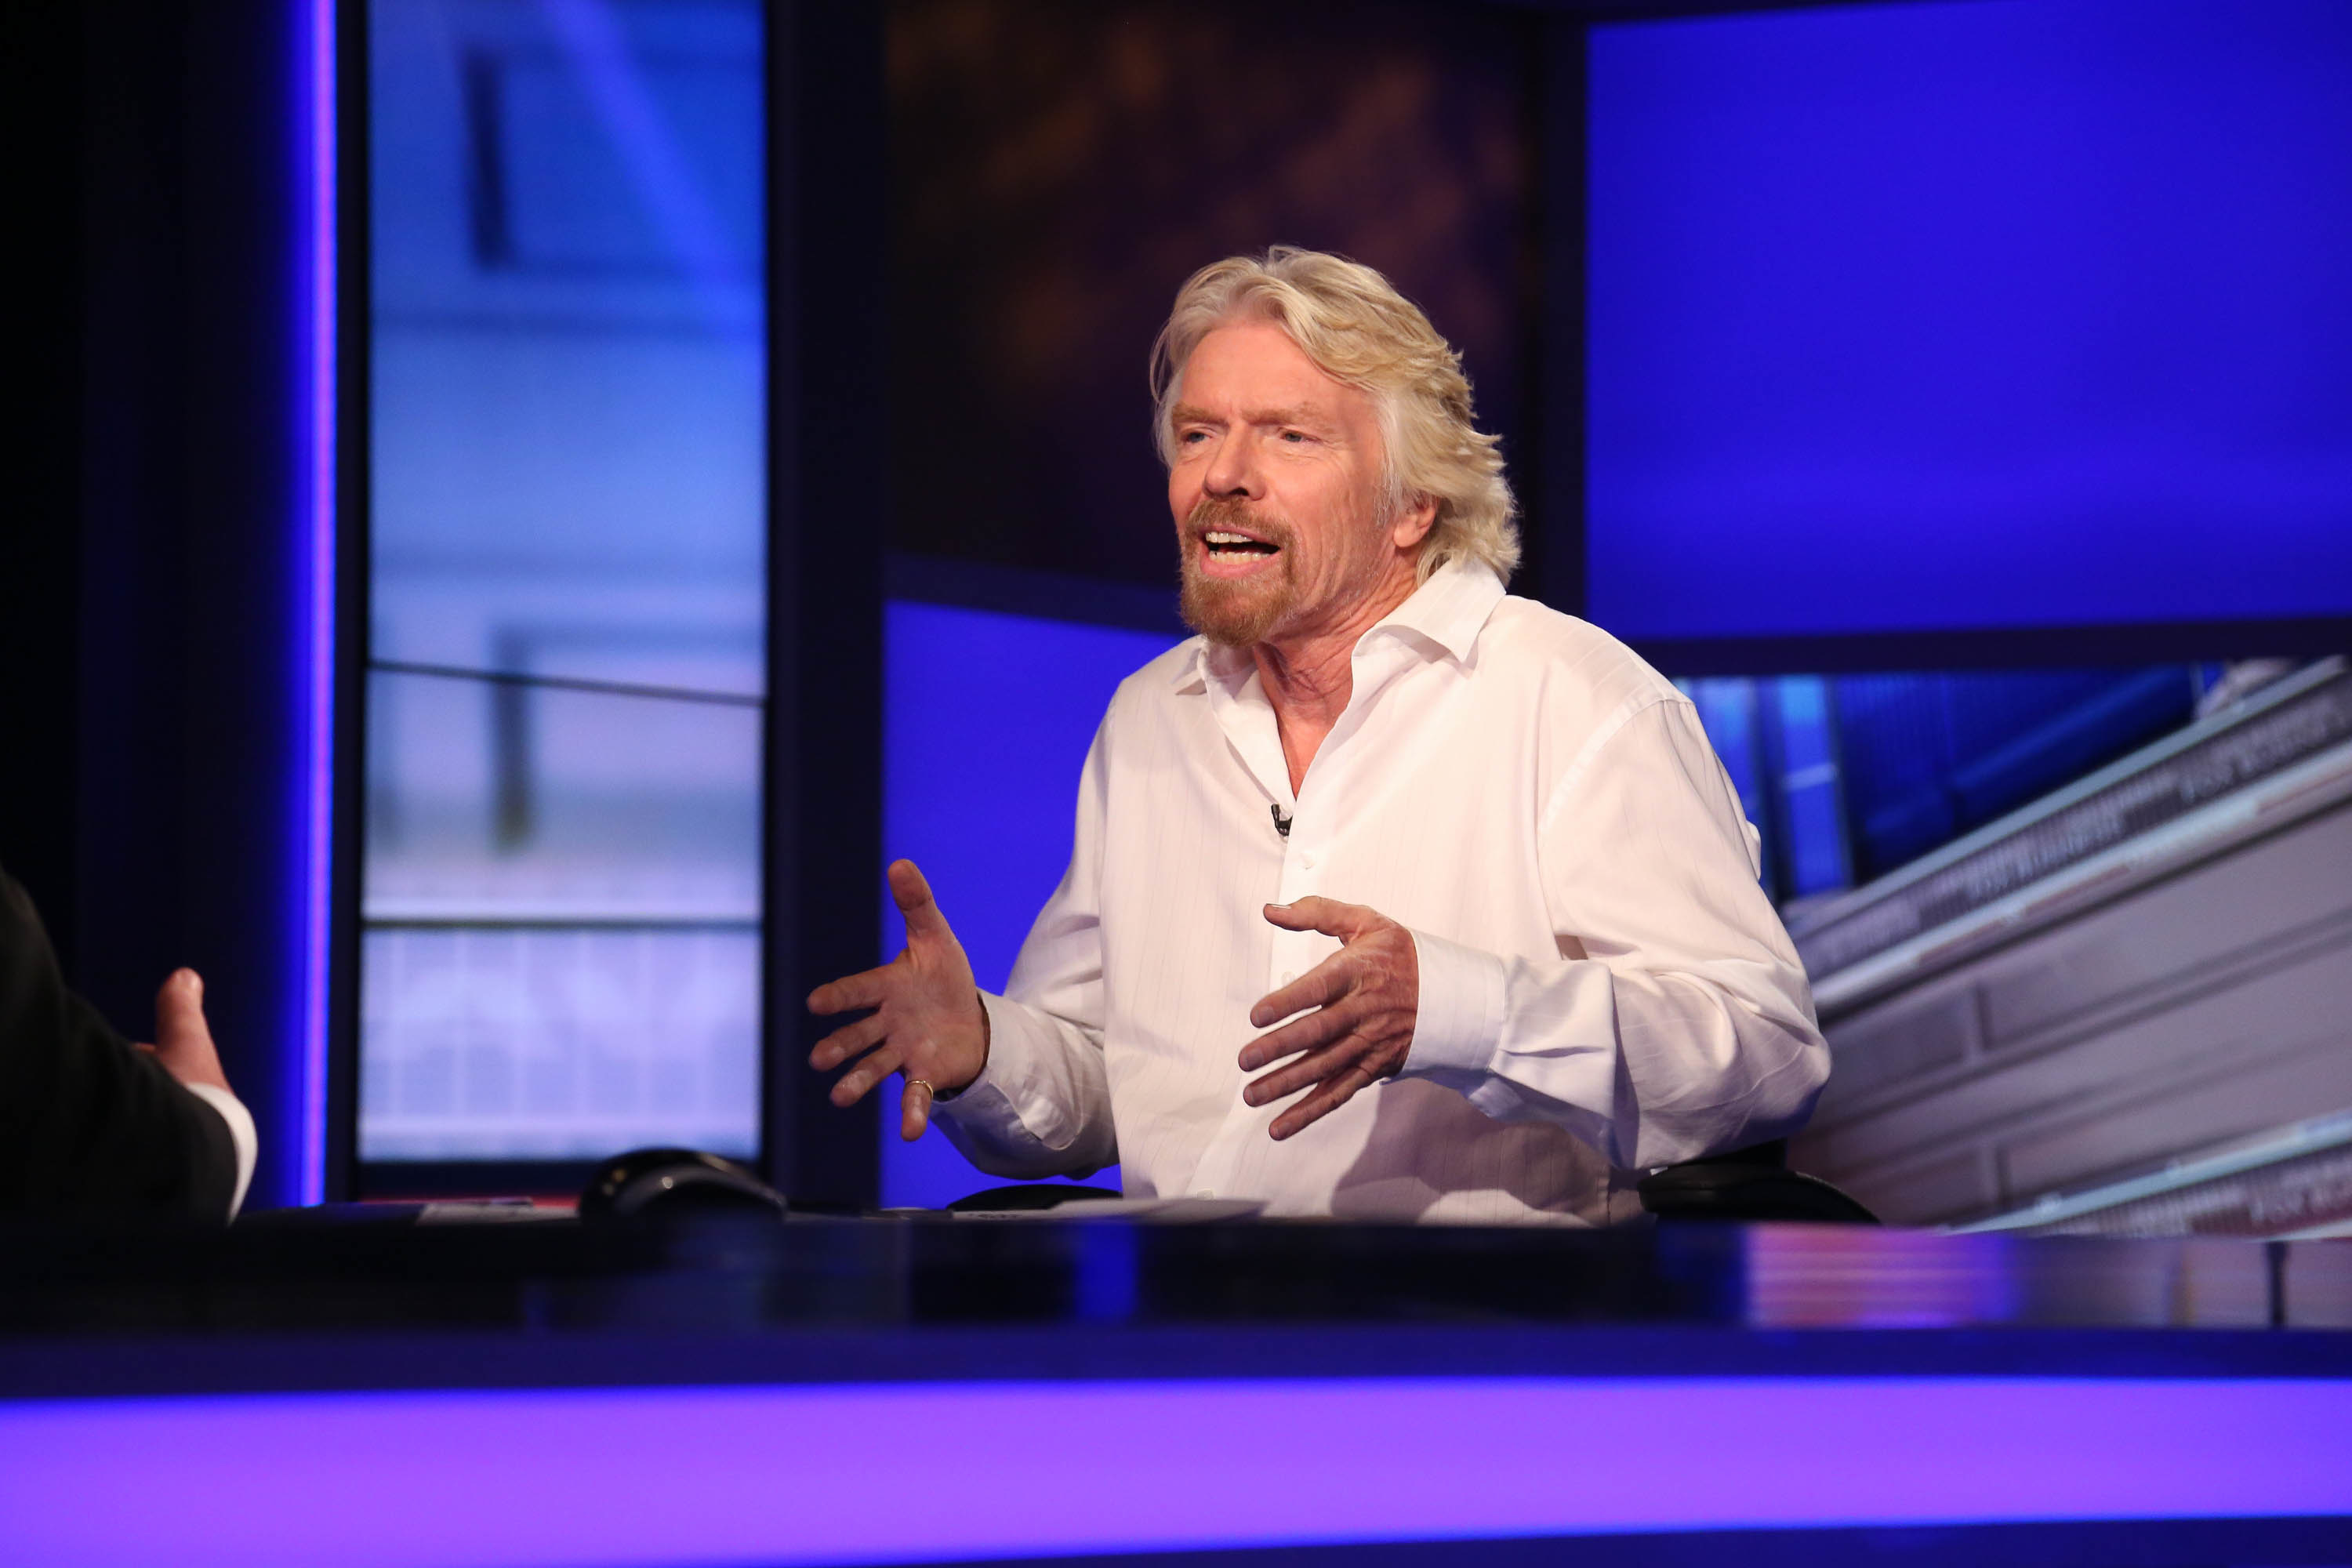 Technology will kill the 9-to-5 work week, says Richard Branson